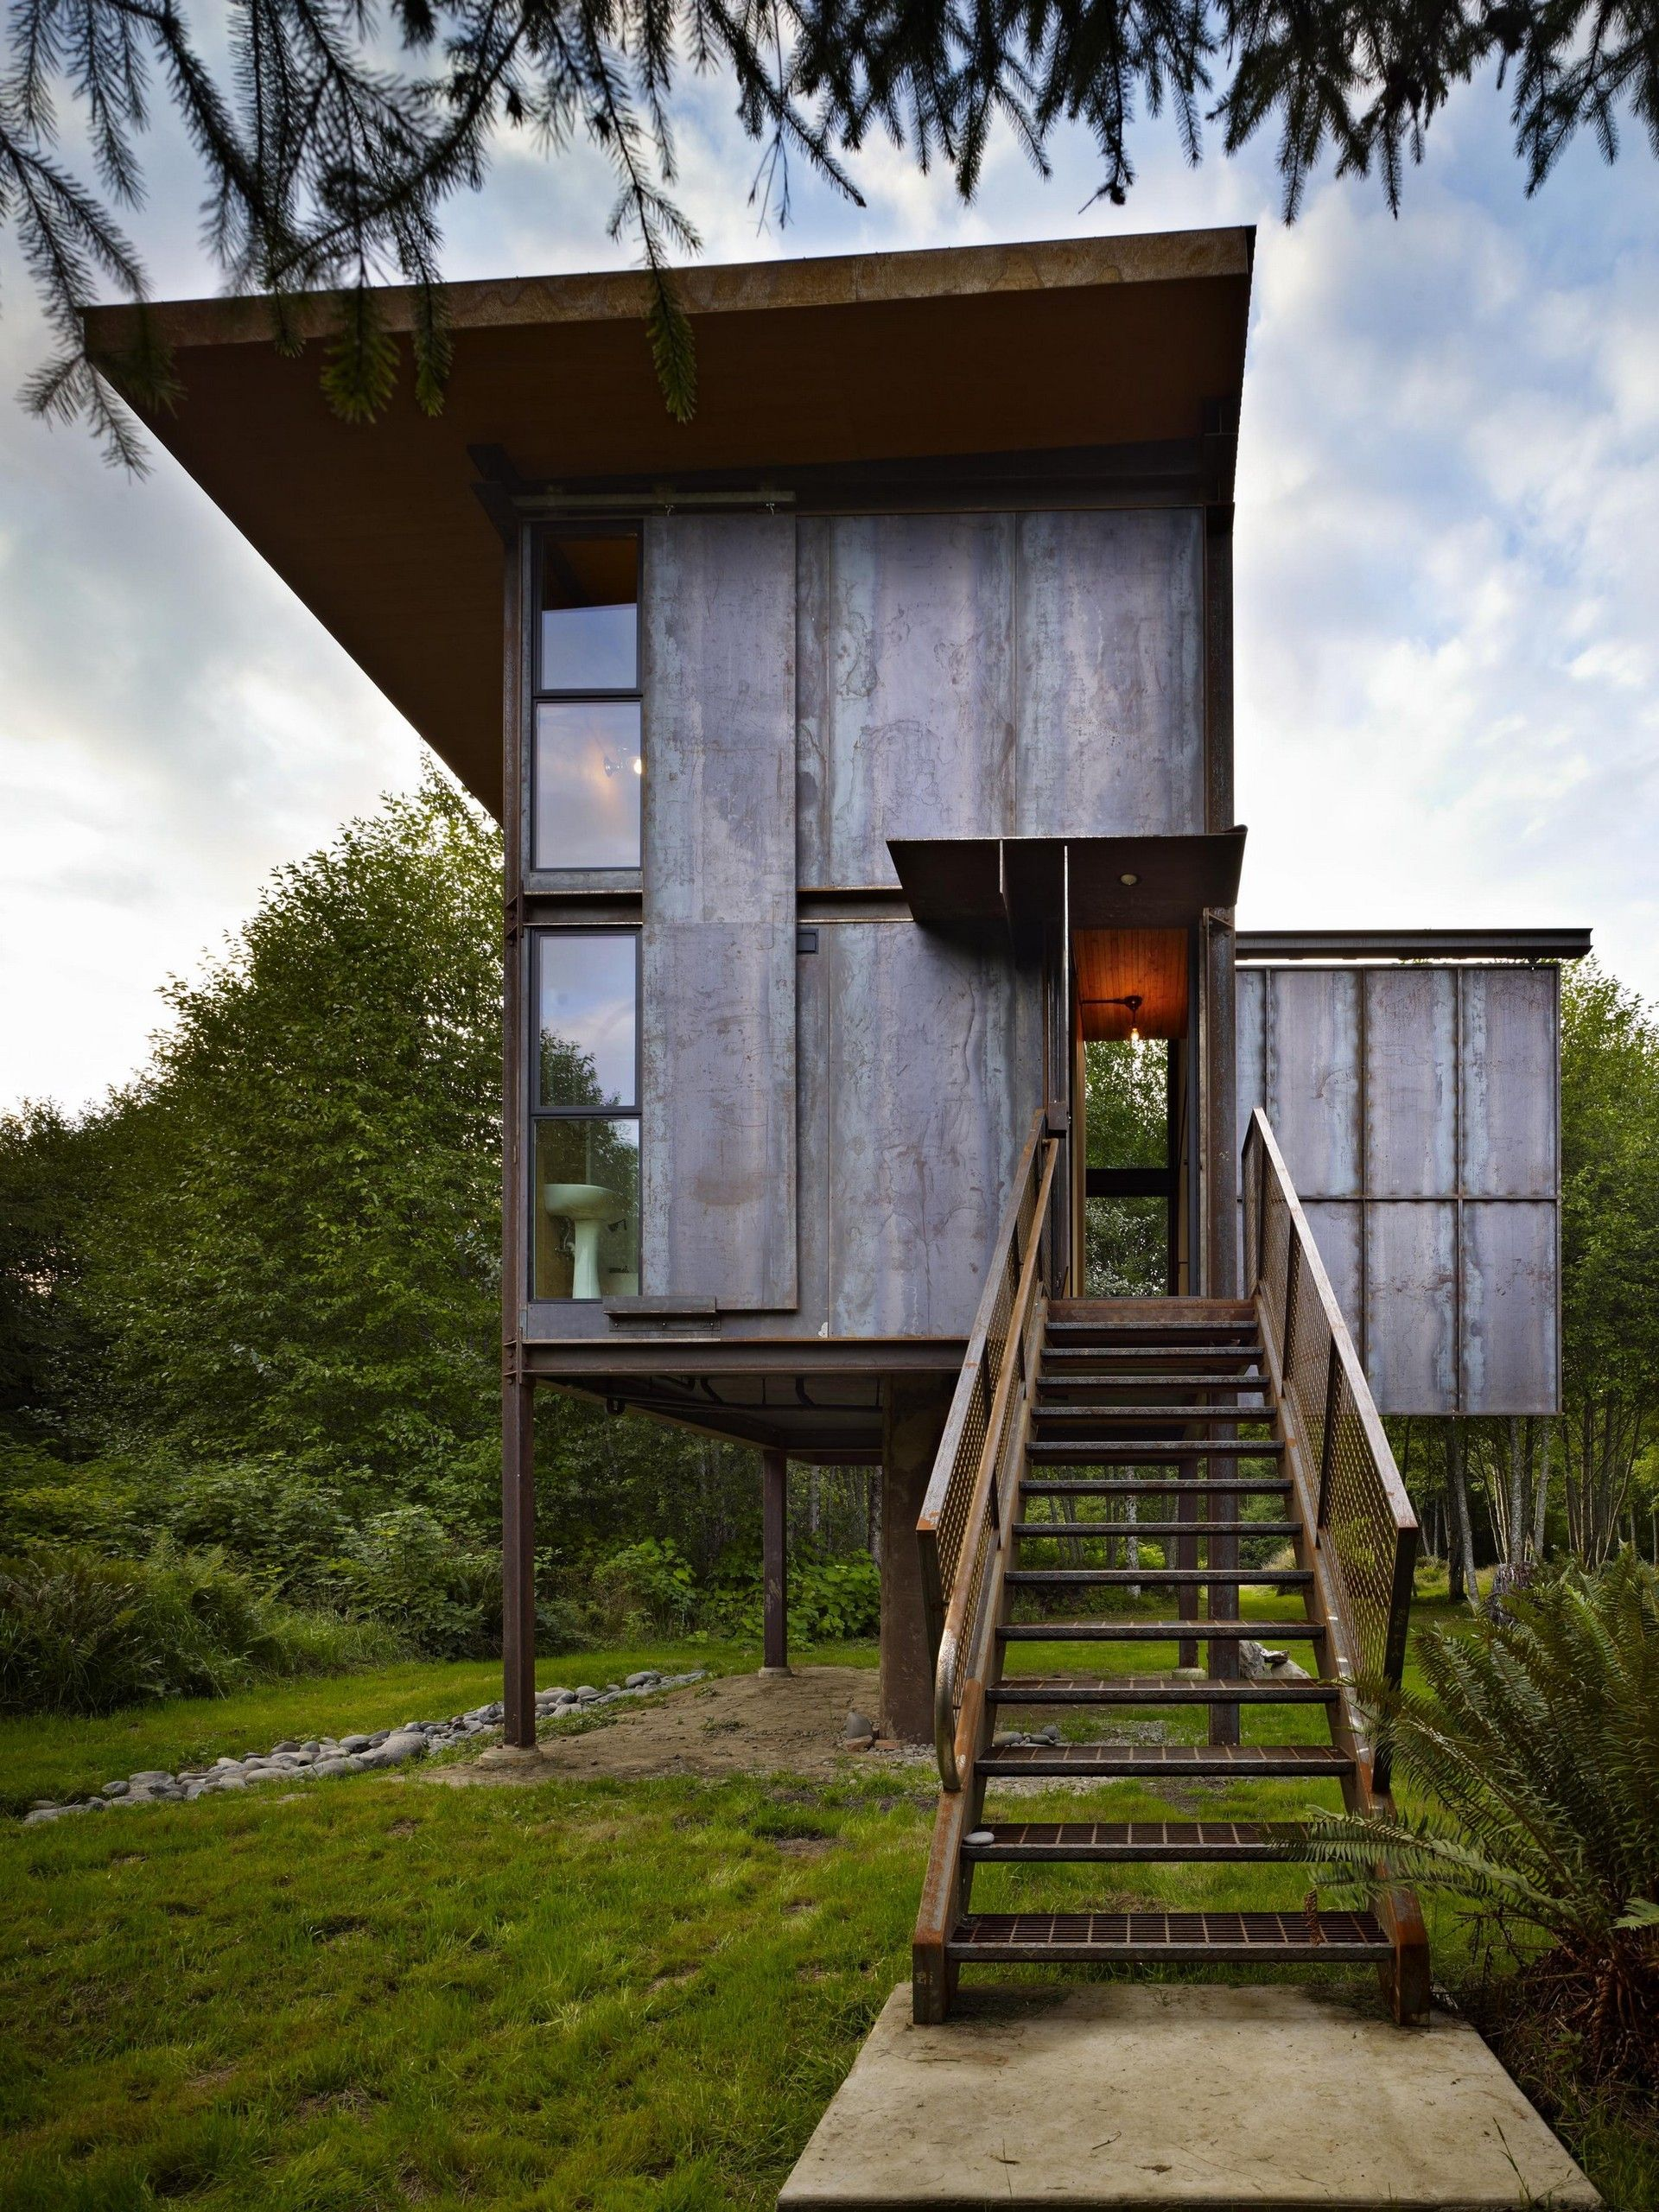 Sol Duc Cabin By Olson Kundig Places House Tiny House Design